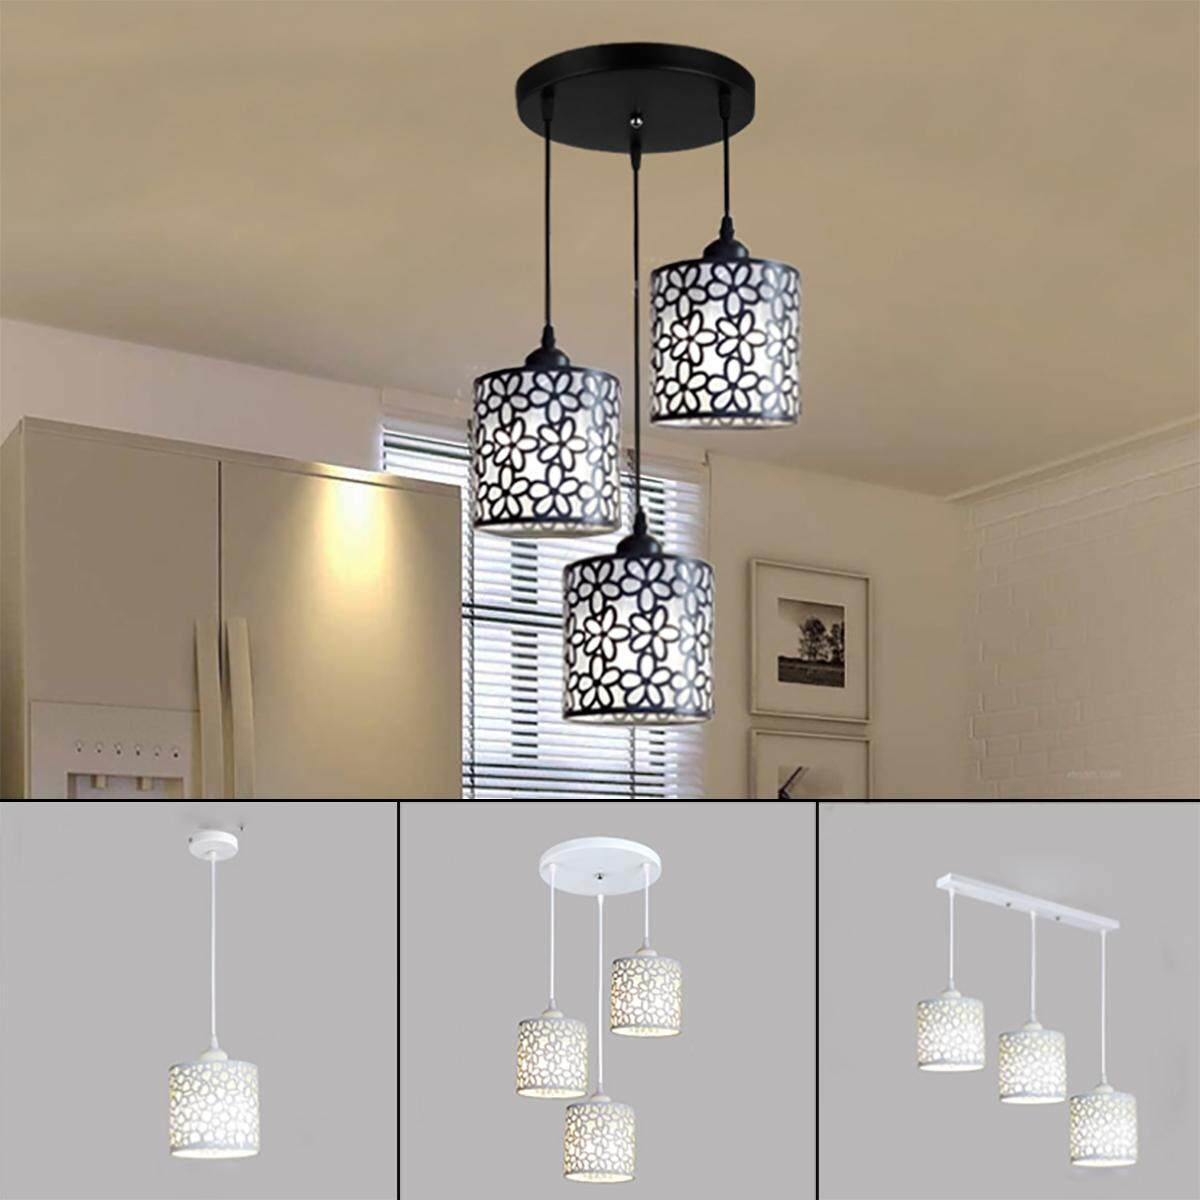 New Fashion Antique Gold Chandelier Crystal Lighting For Dining Room Shopcase Glass Shade Home Lighting E27 Led Hotel Fixtures Luminaria Lights & Lighting